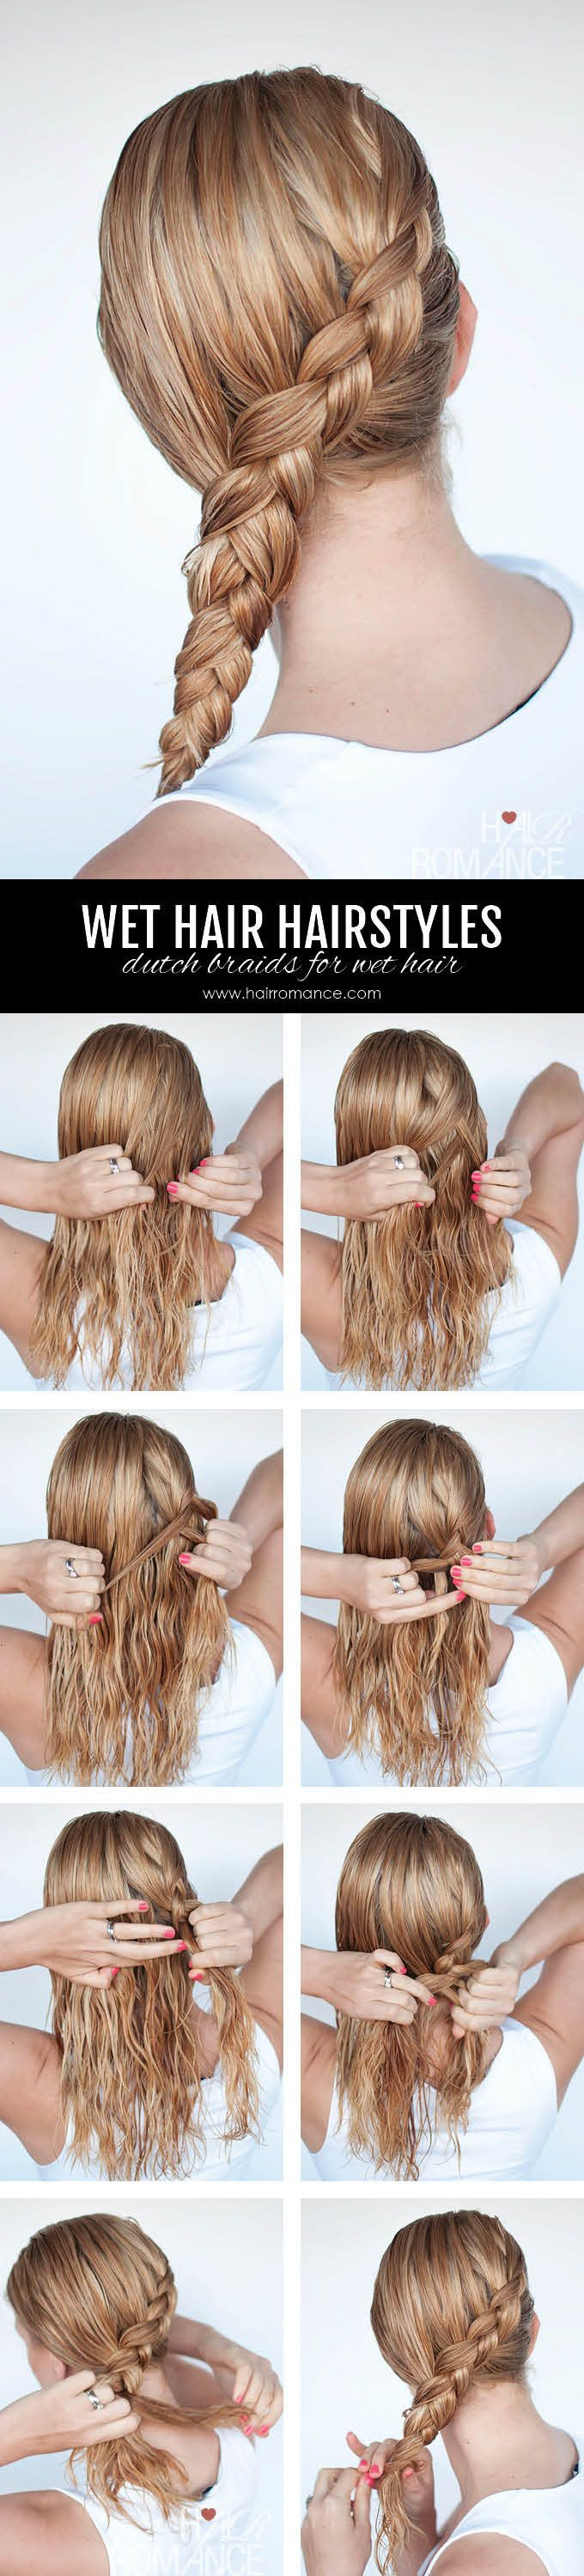 Hairstyle Tutorials Hairstyles For Wet Hair 3 Simple Braid Tutorials You Can Wear In